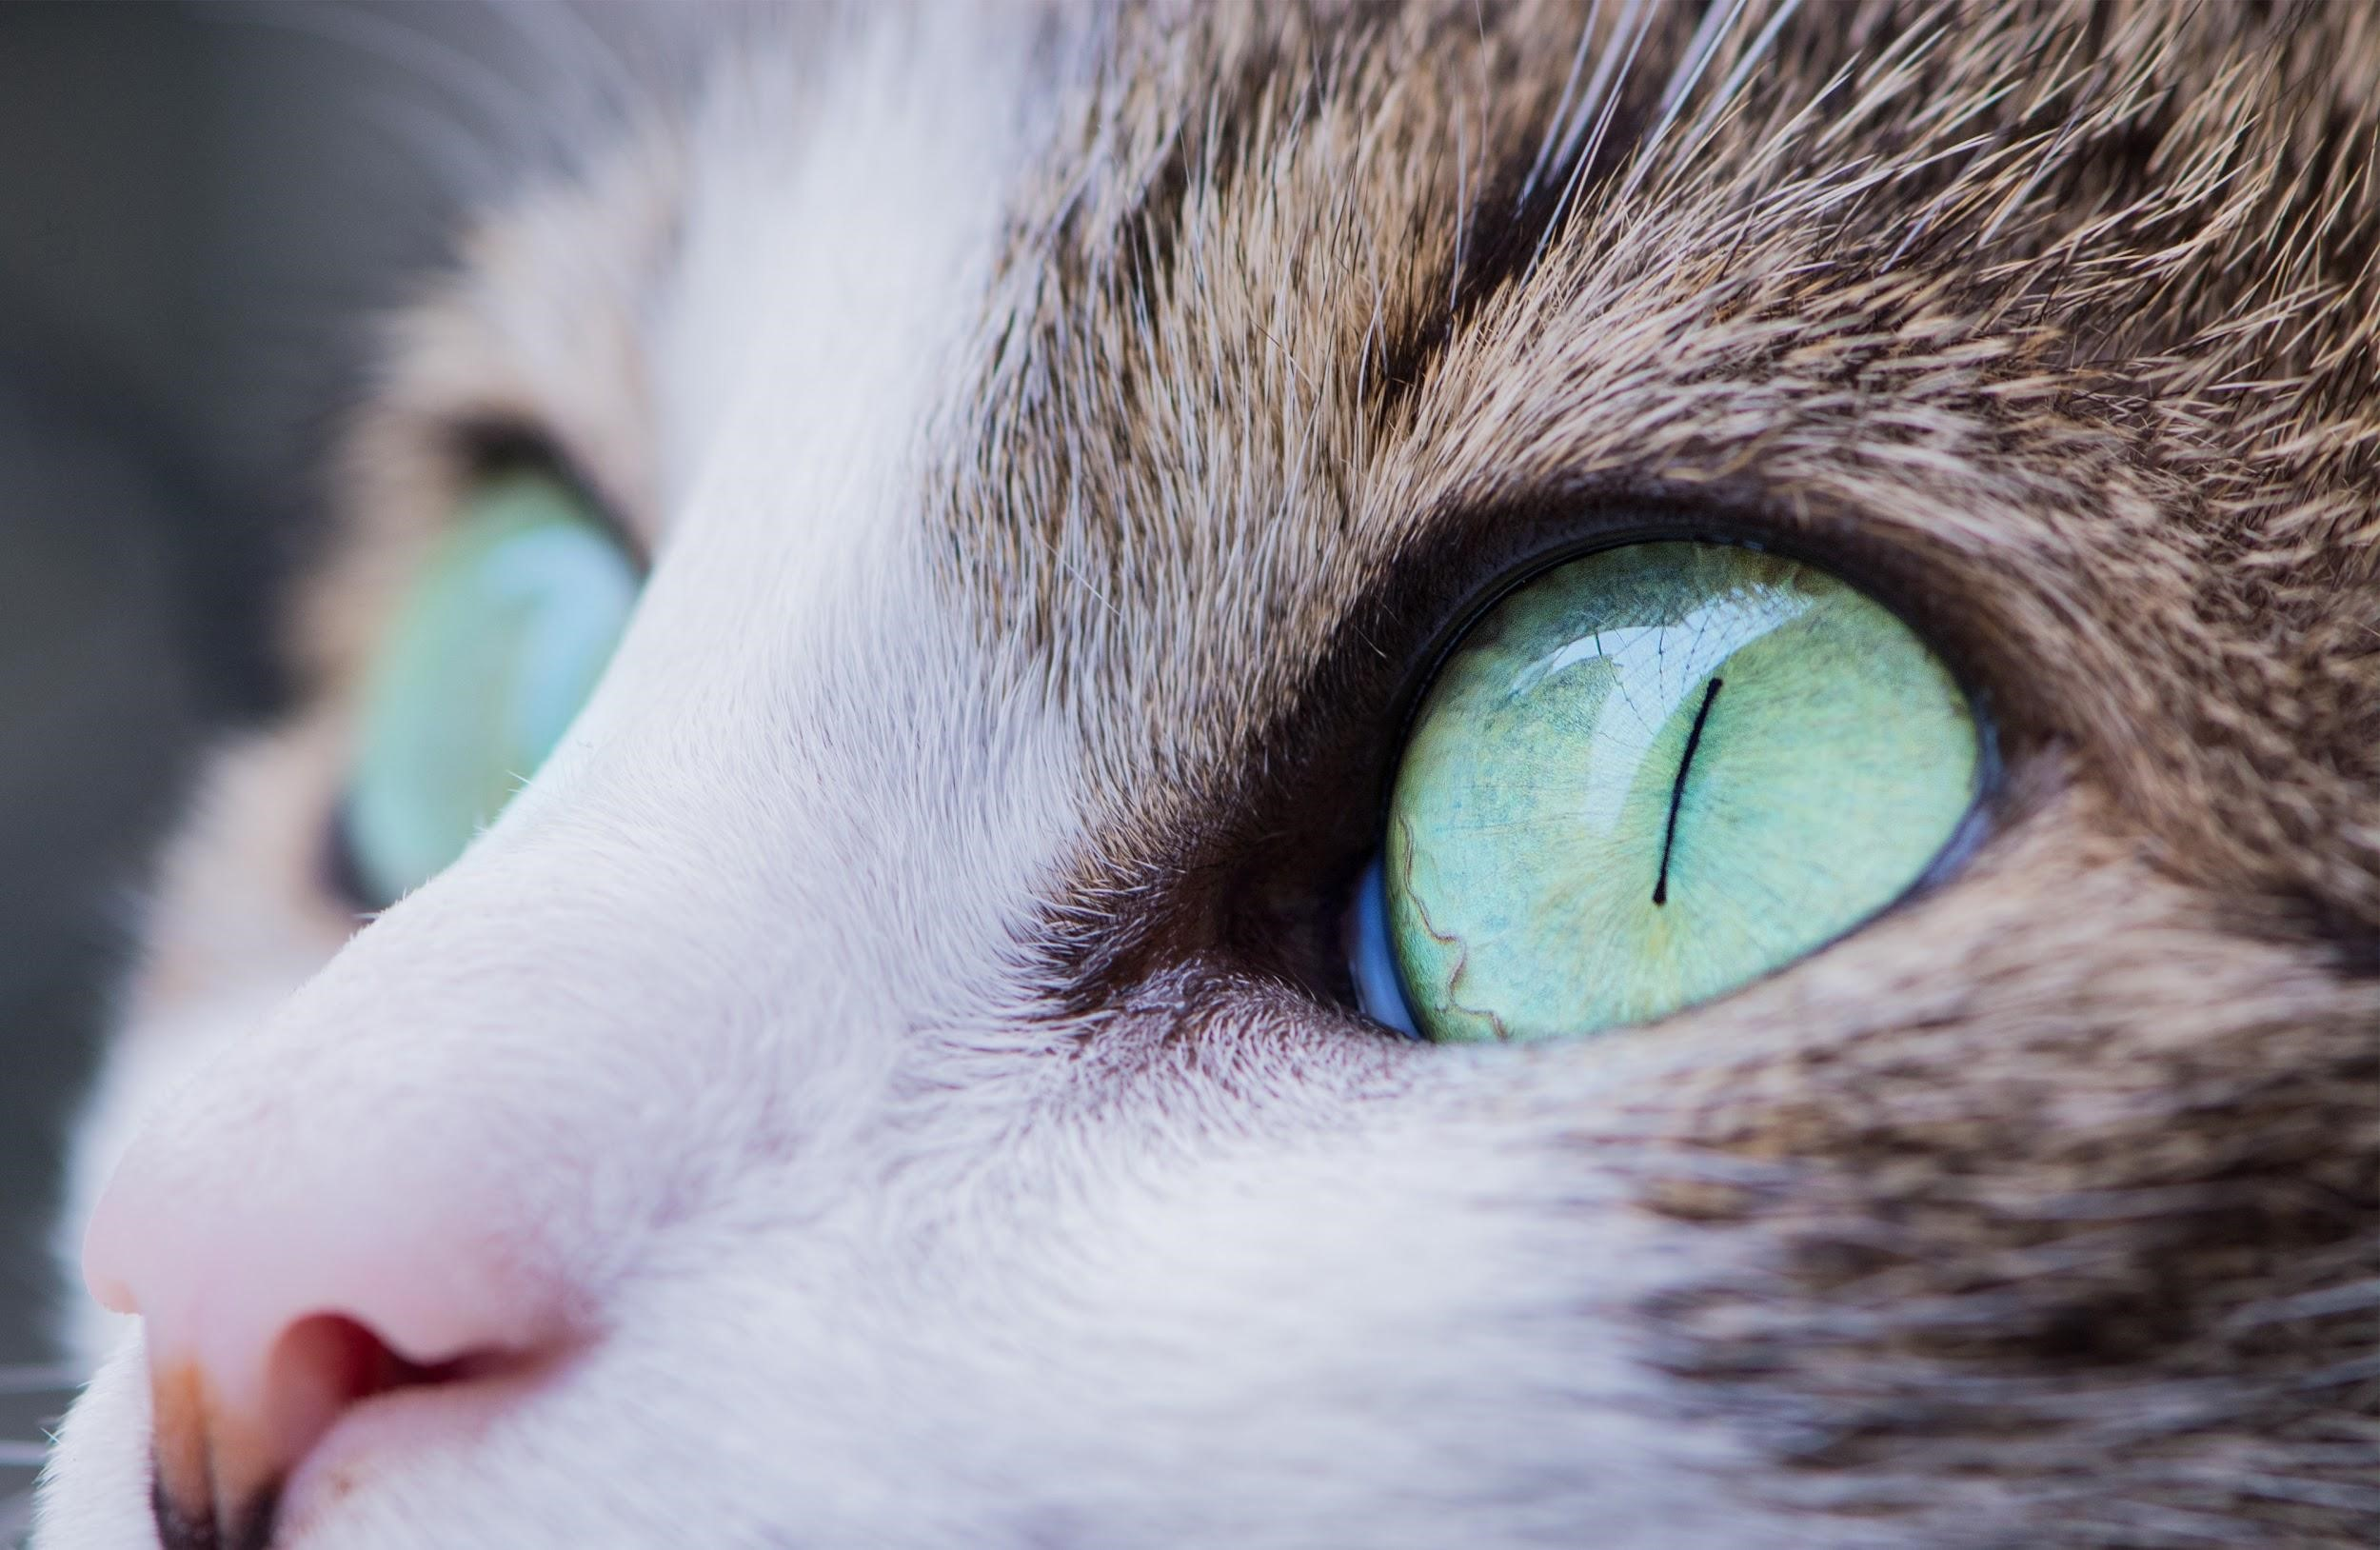 How To Read Your Cat's Mind Through Its Eyes